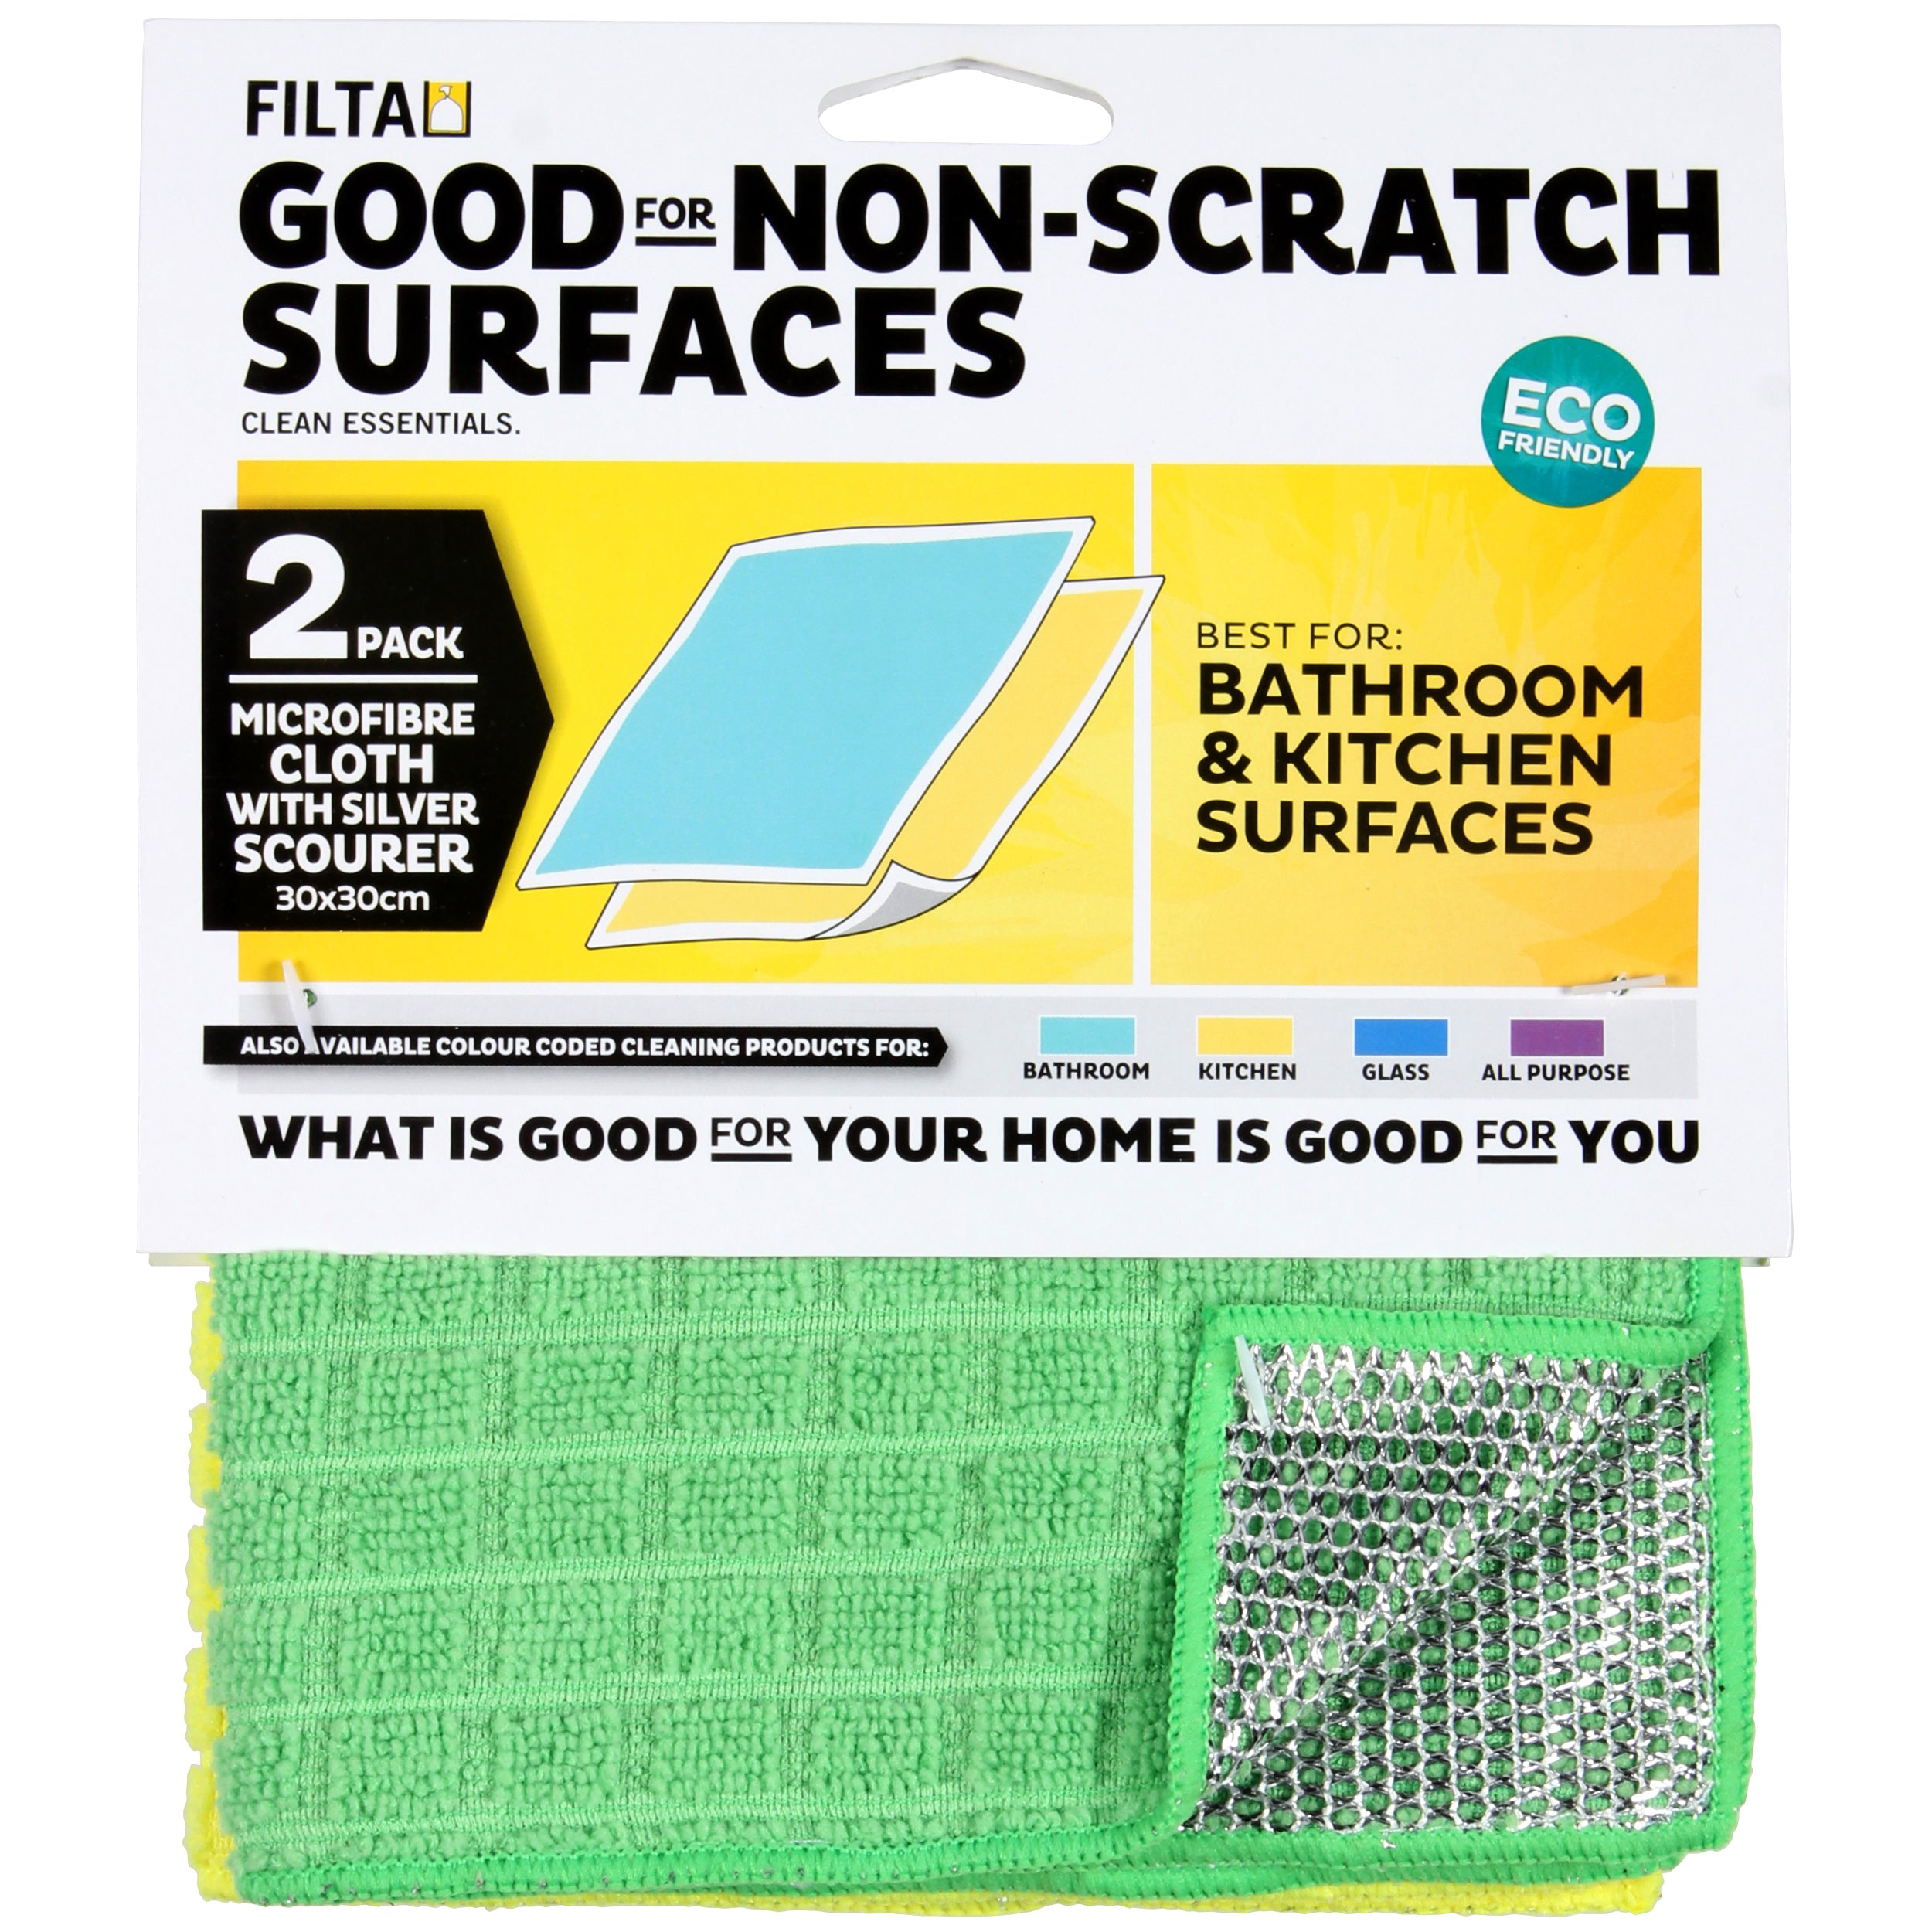 FILTA SILVER SCOURER WITH YELLOW AND GREEN MICROFIBRE CLOTH Yellow/Green 2 Pack - Sold by Pack in multiples of 1 Pack